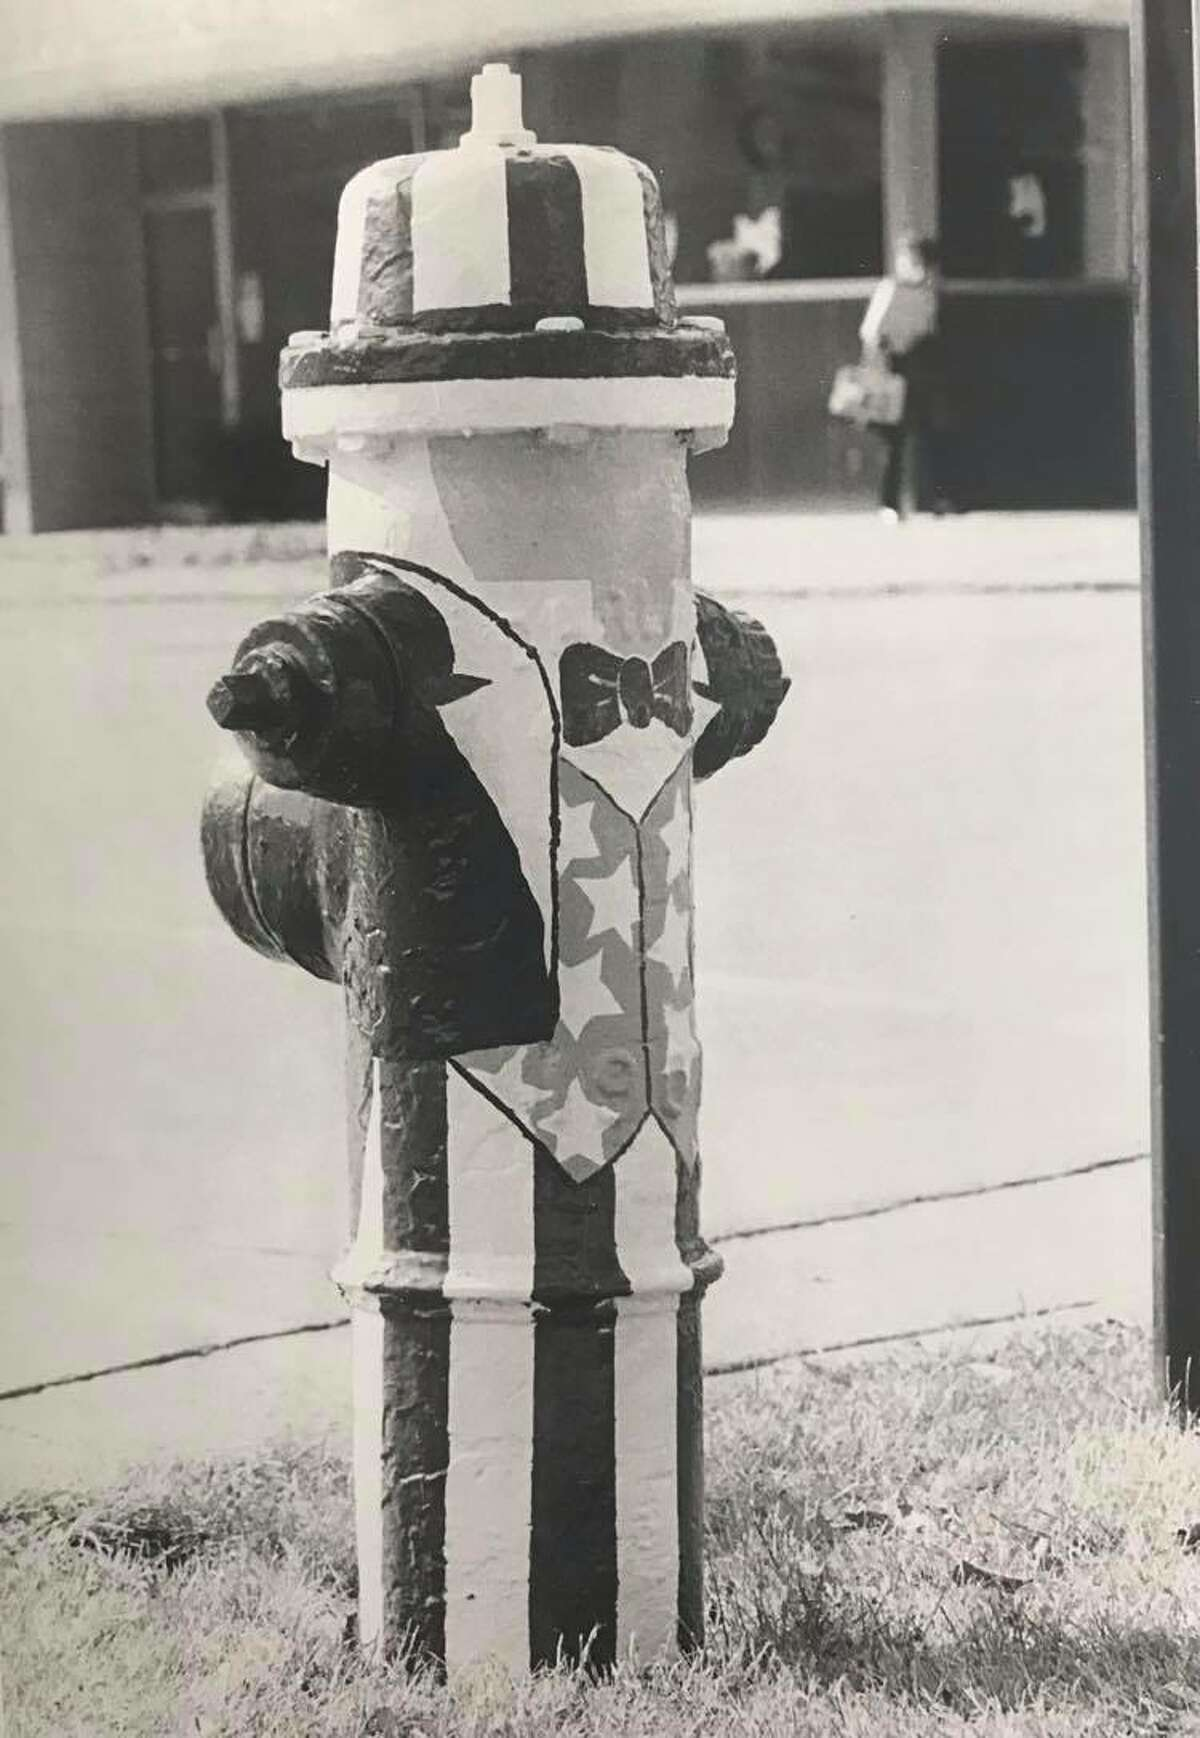 One of the patriotic hydrants. October 1975